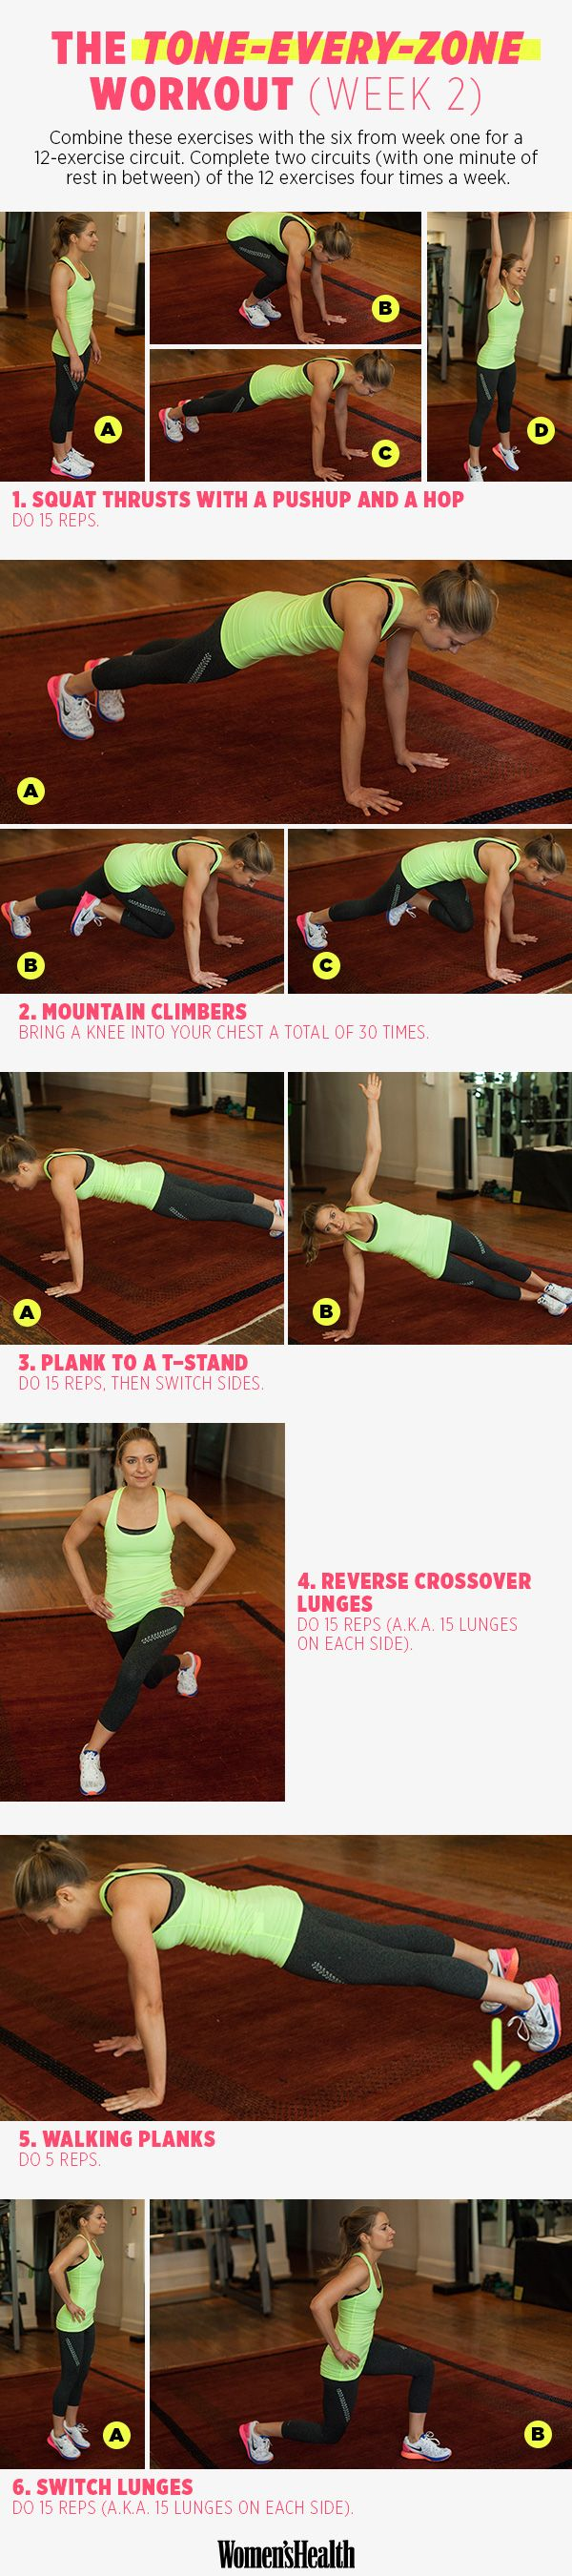 6 Moves for Total-Body Toning WEEK 2 - Our four-week training plan with celeb trainer David Kirsch kicks off today! Meet the first week of strength-training exercises here. | Women's Health Magazine #fitness #workout #health